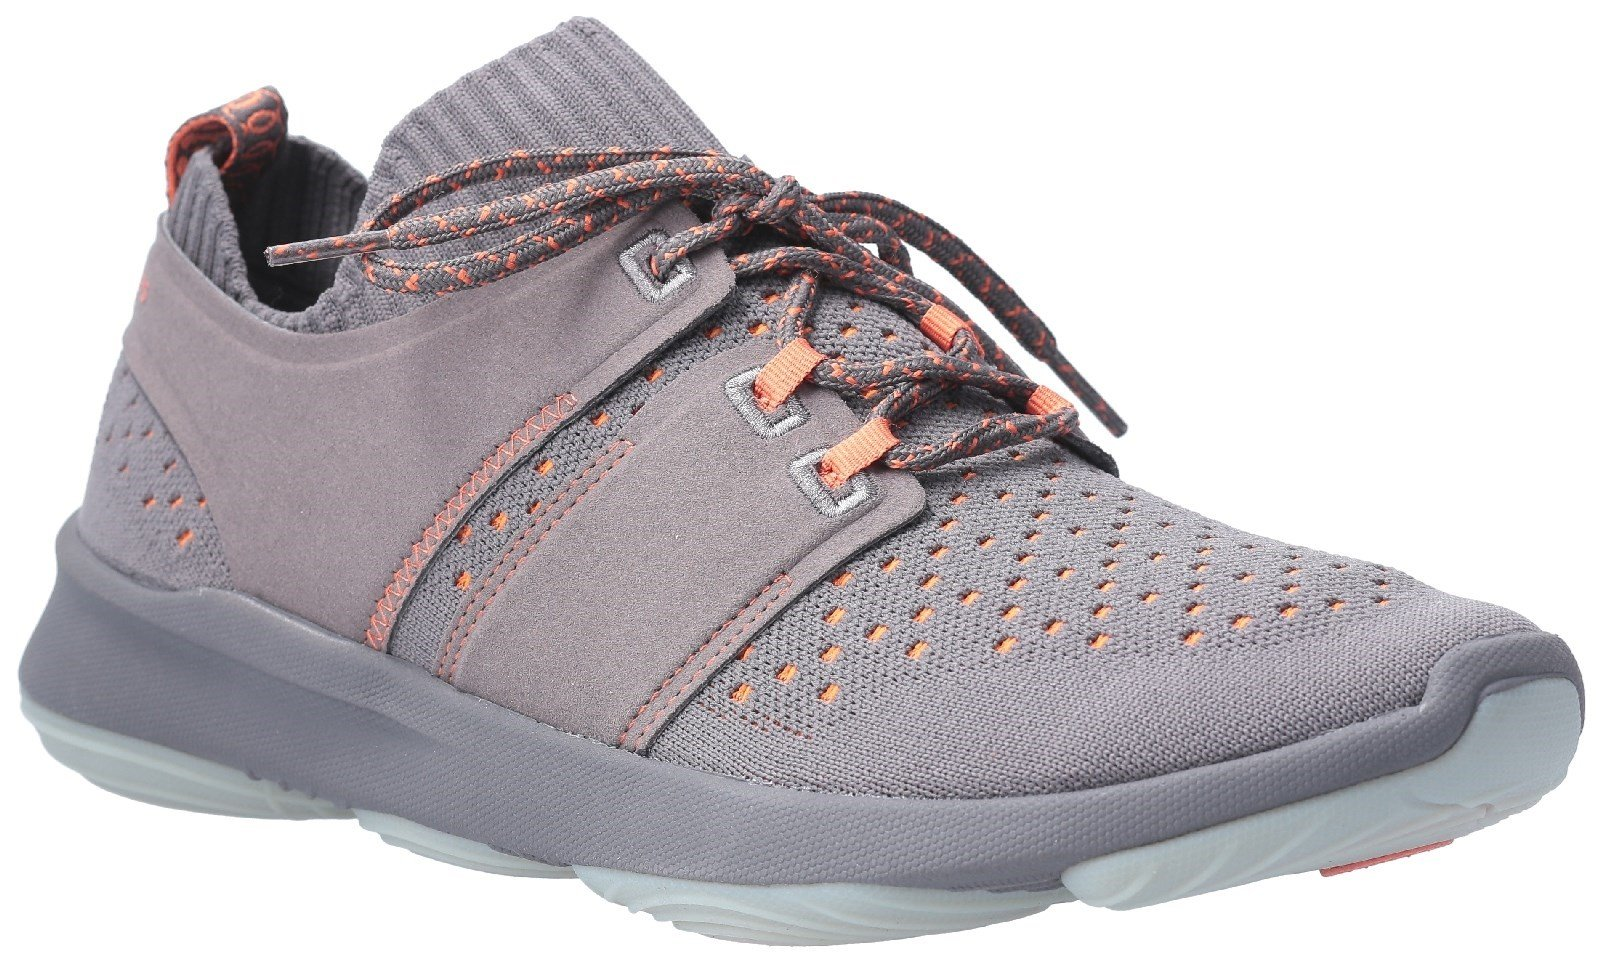 Hush Puppies Men's World BounceMax Lace Up Trainer Various Colours 28382 - Dark Grey 7